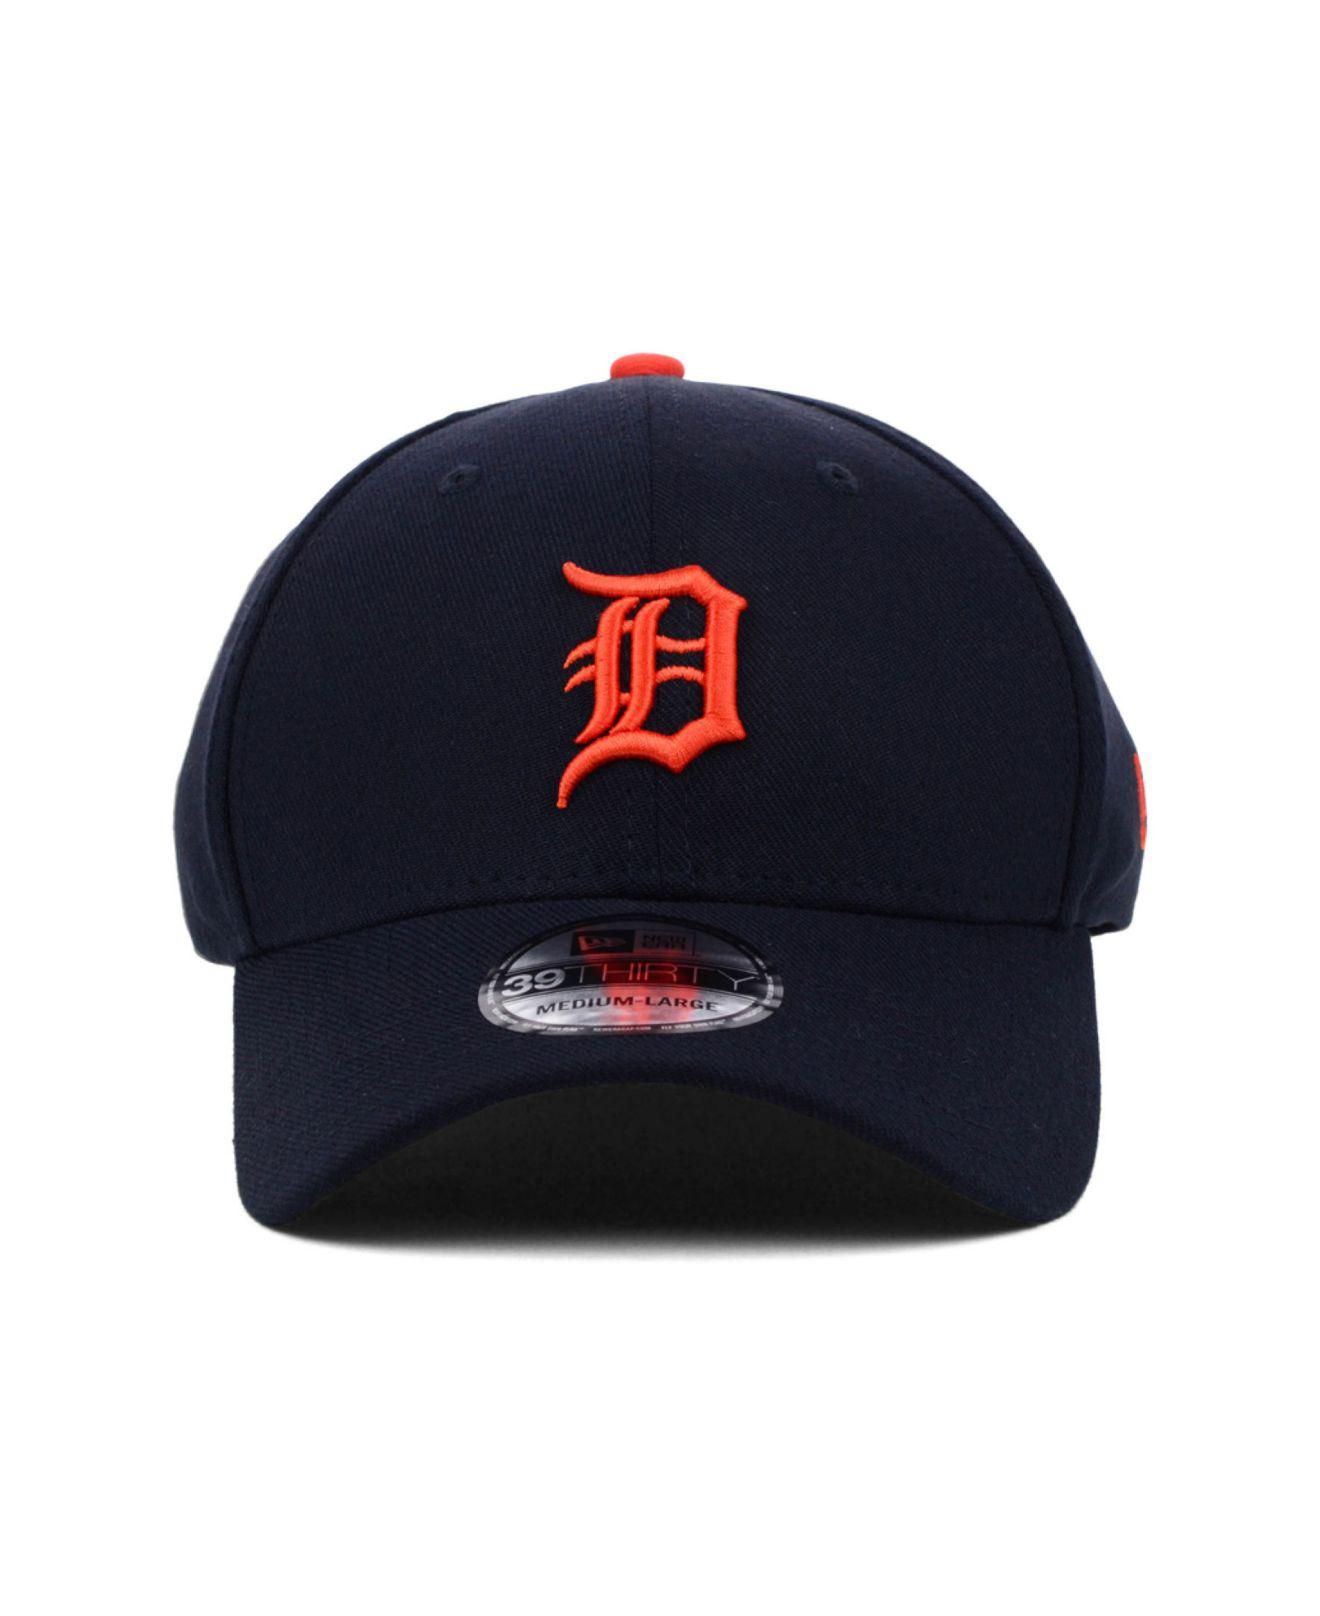 Lyst - KTZ Detroit Tigers Mlb Team Classic 39thirty Cap in Blue for Men 93f6a0282